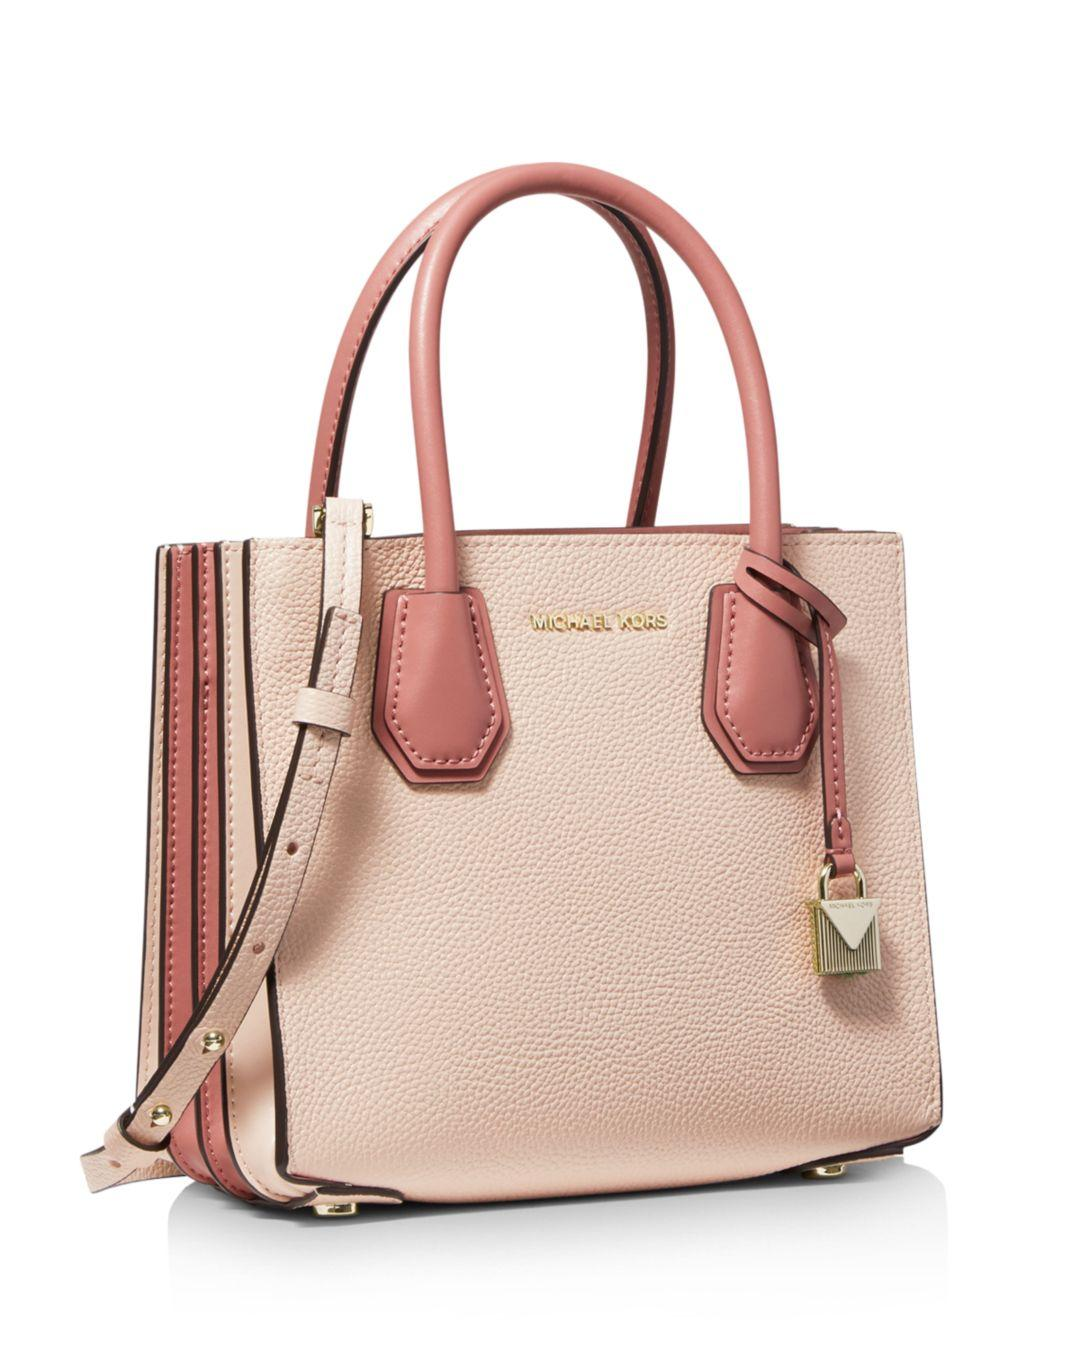 4c7bf9f36dd9 MICHAEL Michael Kors Mercer Medium Accordion Crossbody Bag in Pink - Save  6.009615384615387% - Lyst